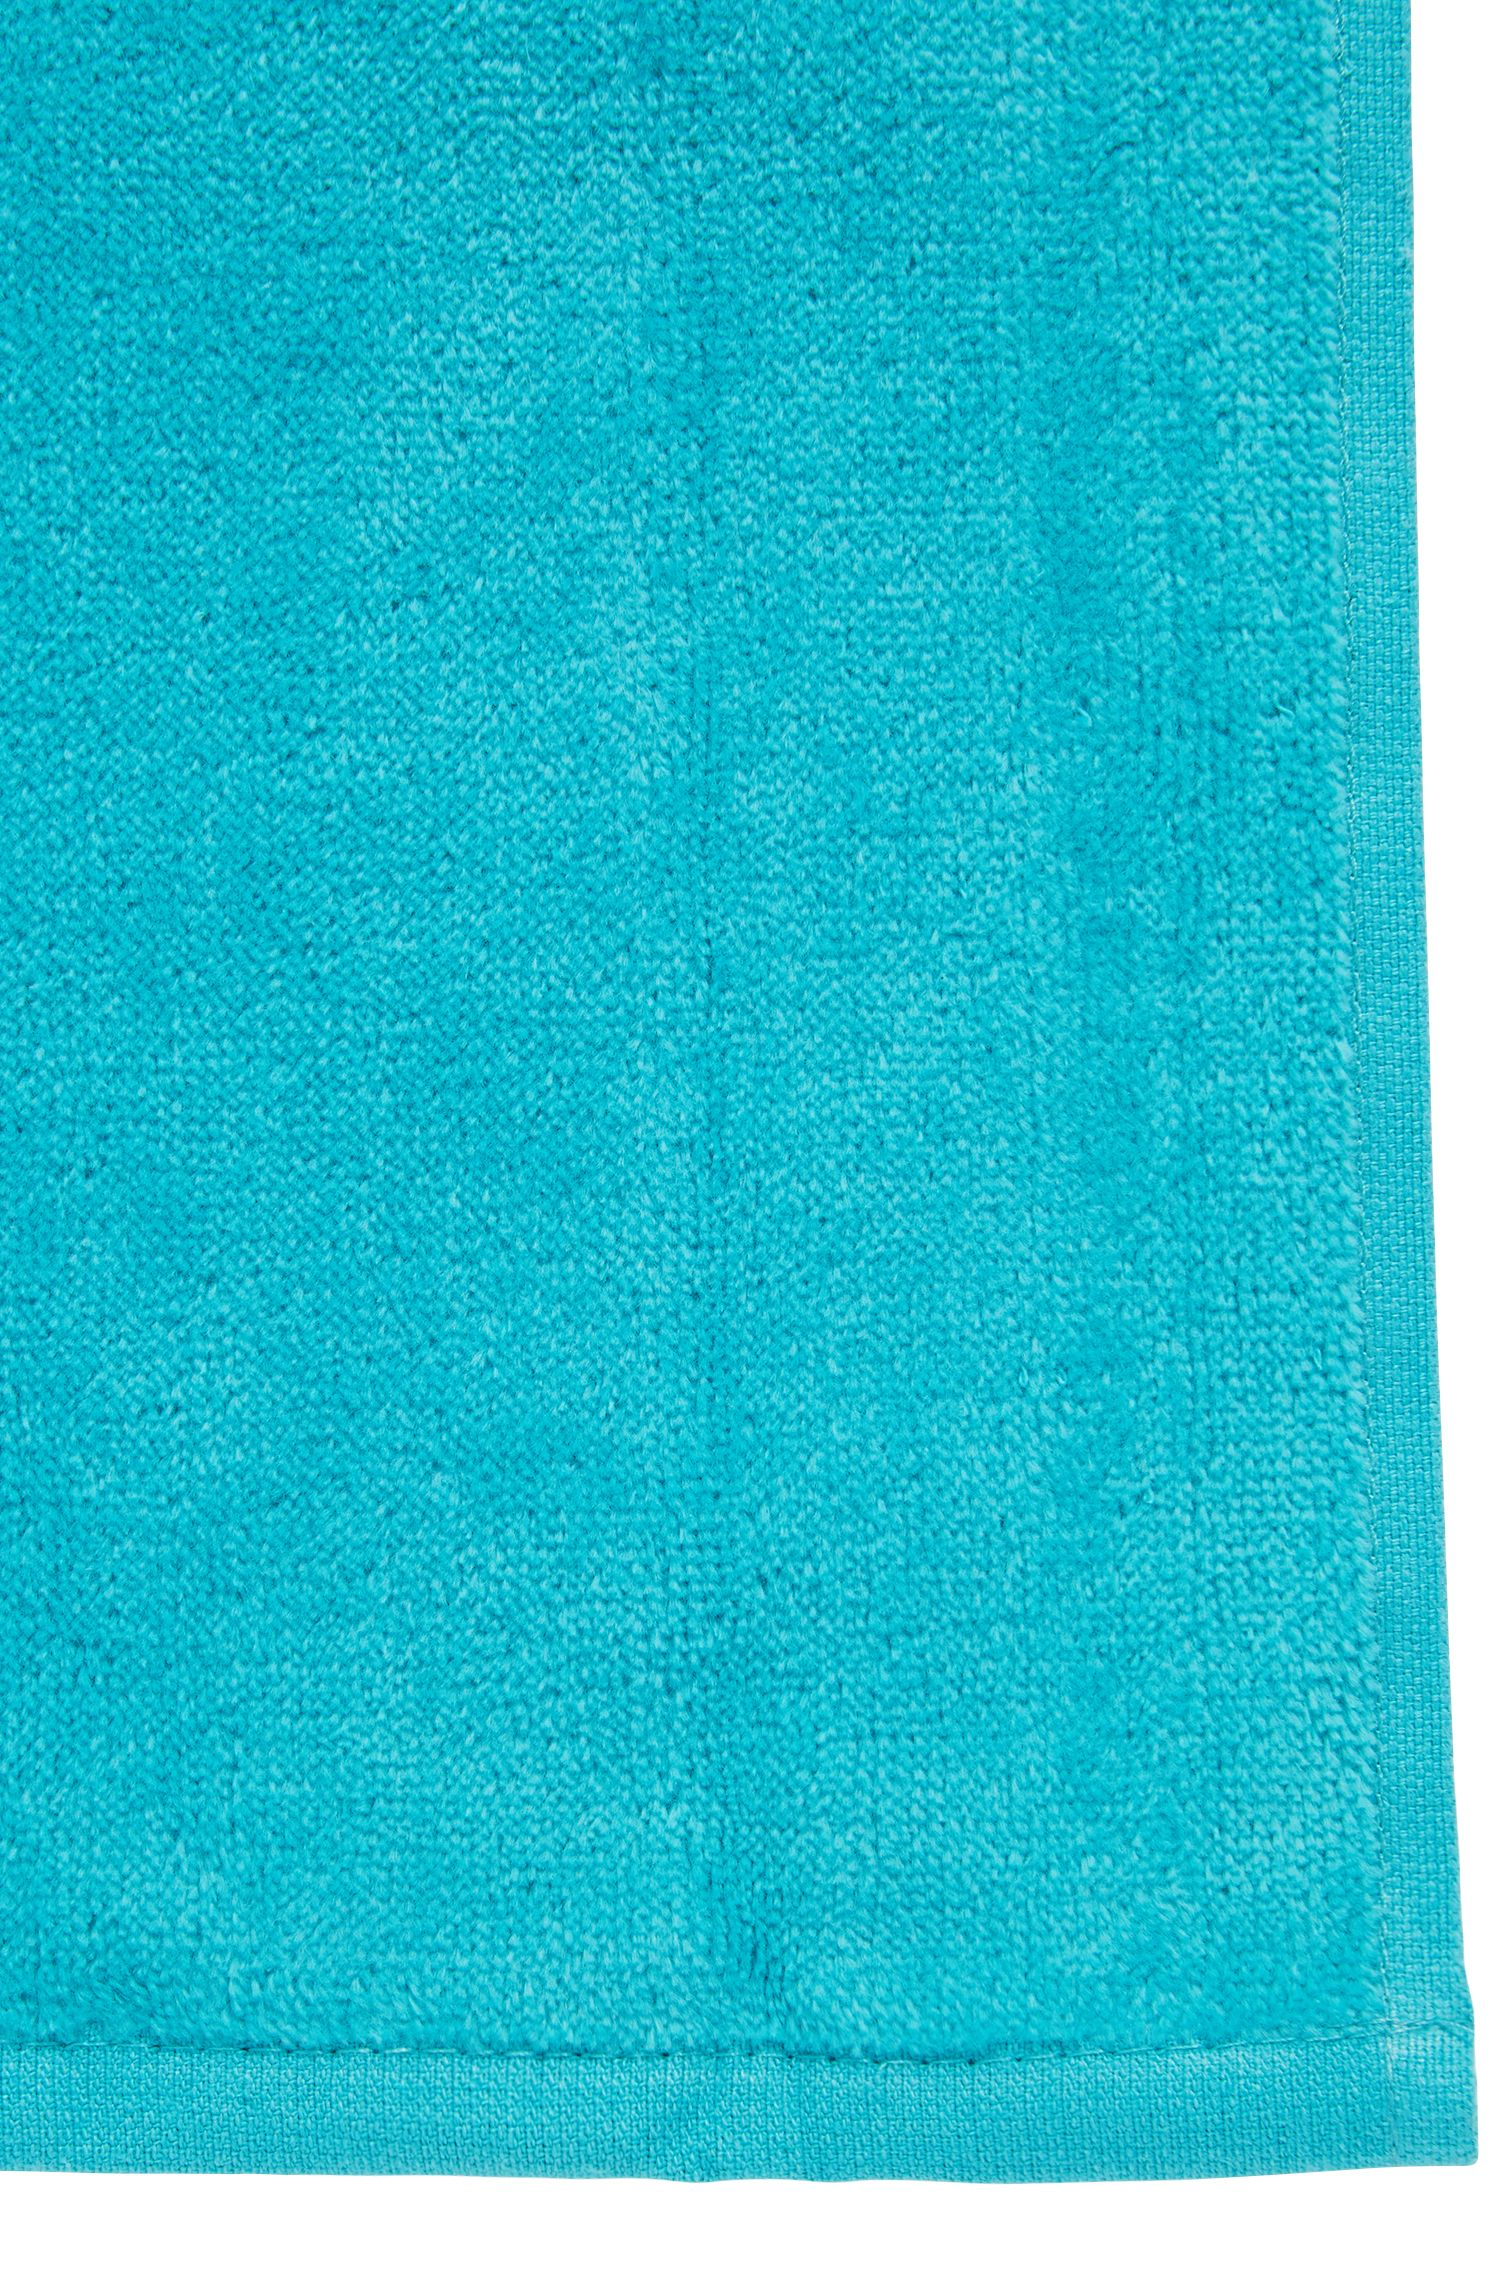 Beach towel soft cotton with logo, Turquoise